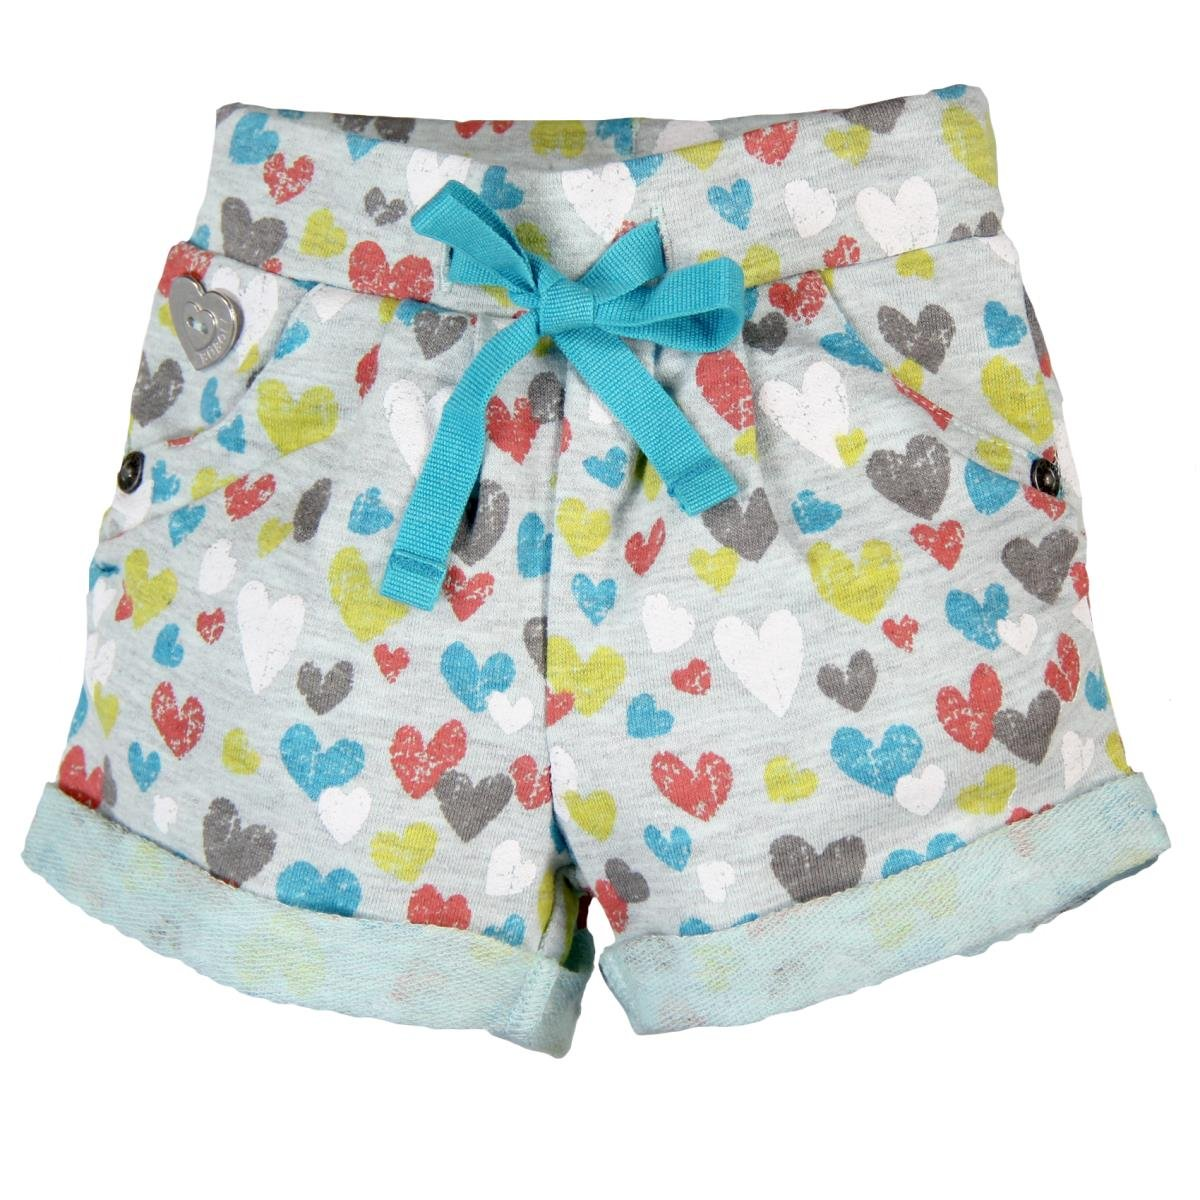 boboli Baby Girls' Fleece Shorts Multicolour (Print) 18-24 Months Bóboli 223074